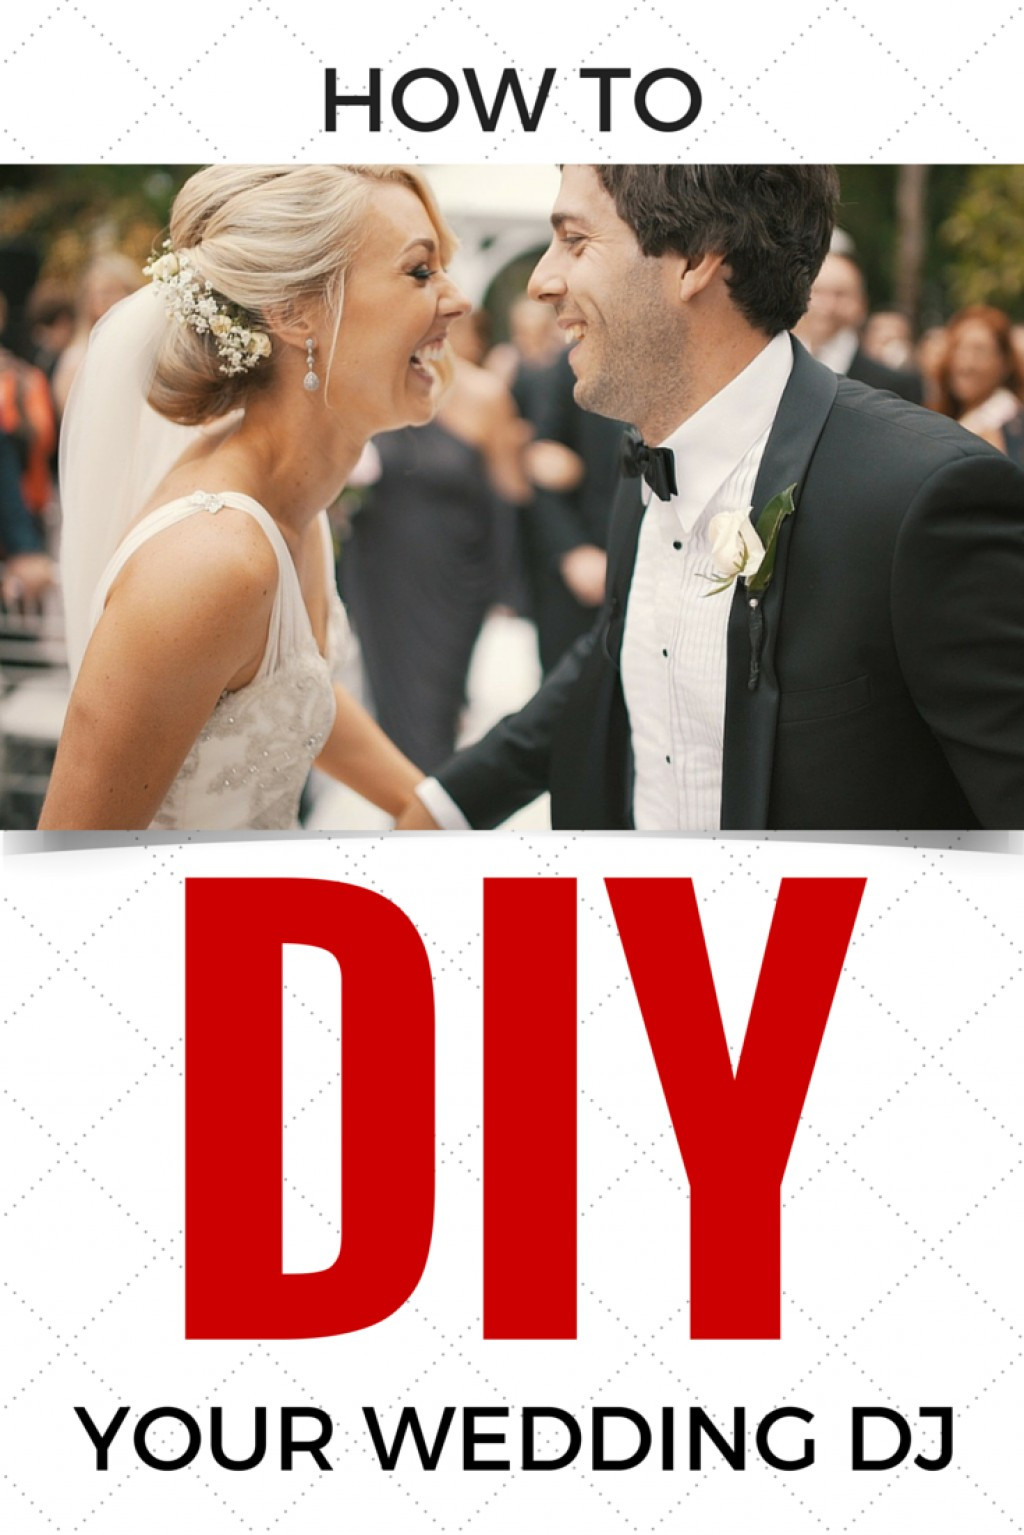 Best ideas about DIY Wedding Dj . Save or Pin How to DIY Your Wedding DJ Now.